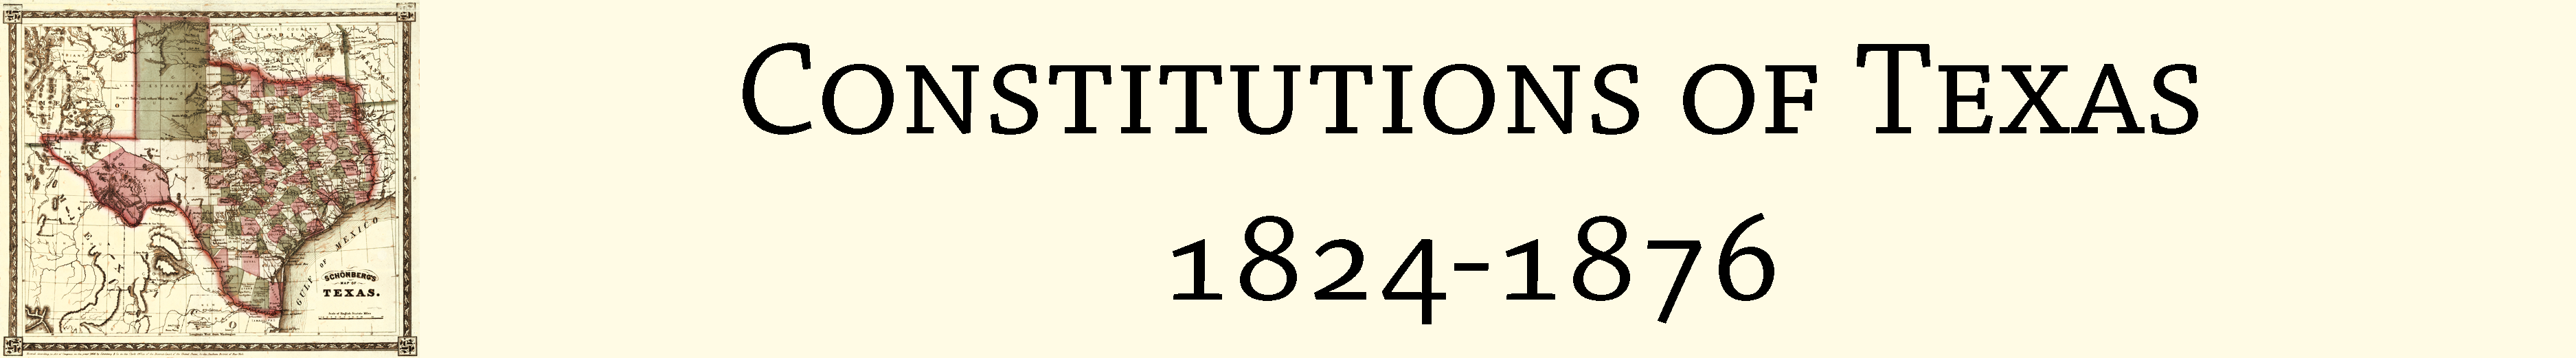 Constitutions of Texas 1824-1876